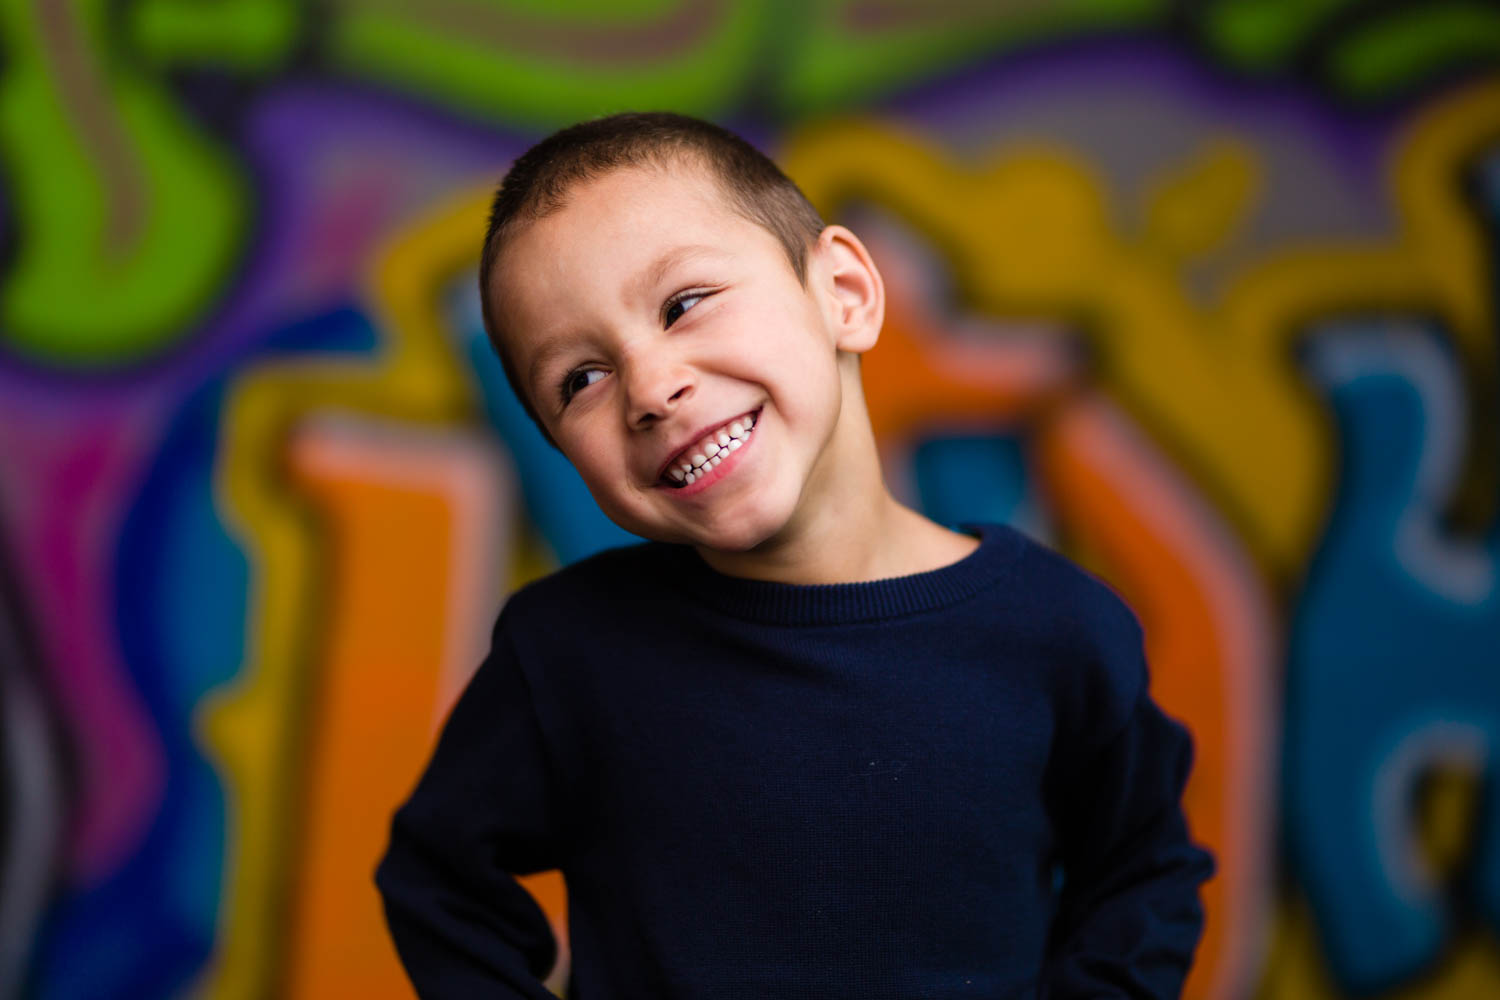 Getting smiles with graffiti background